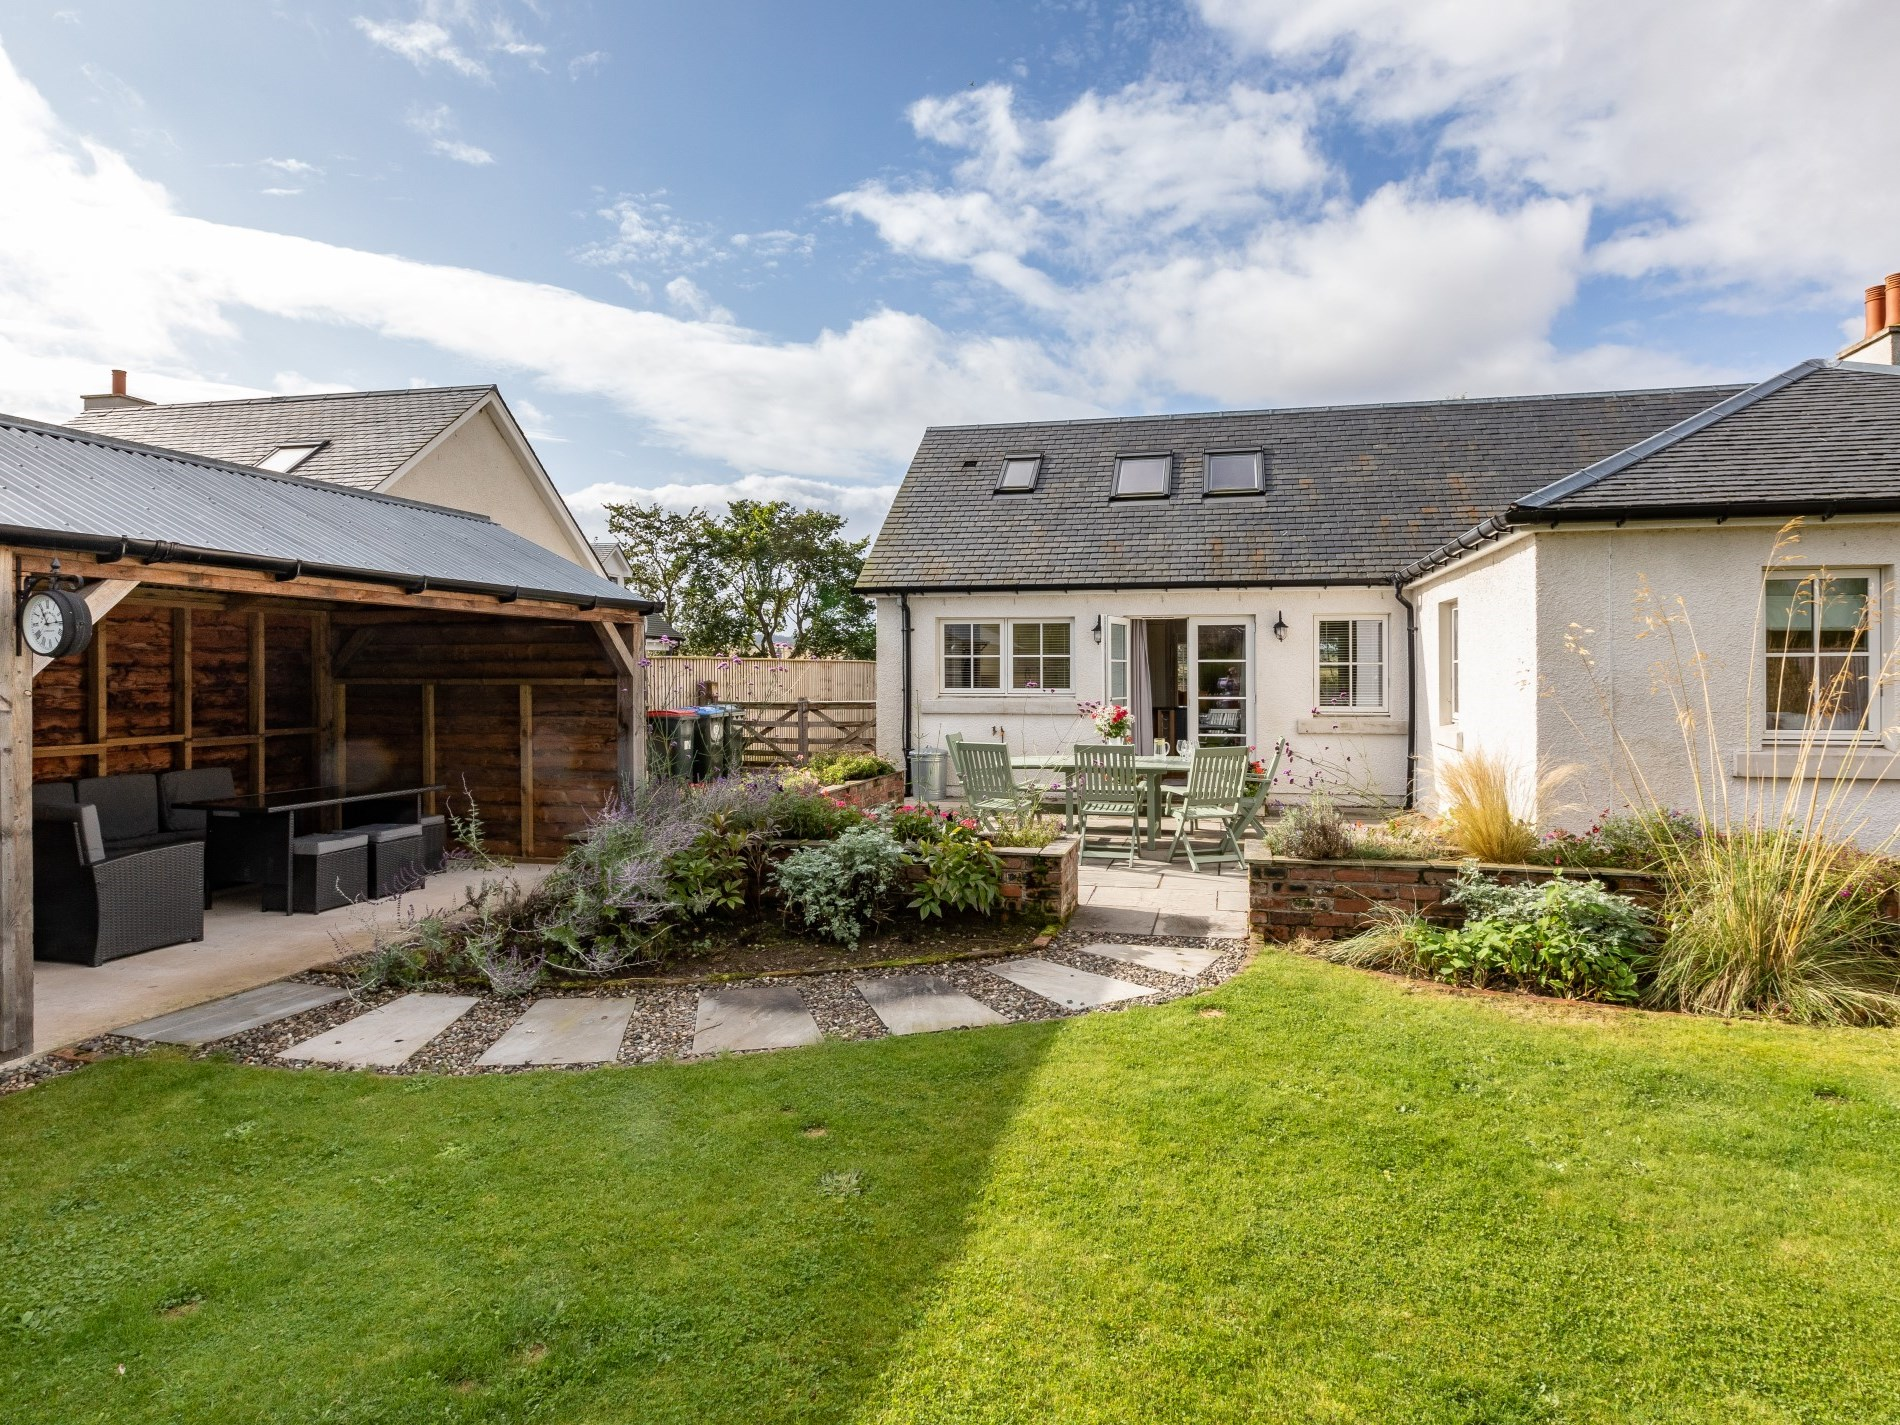 4 Bedroom Cottage in Perth, Perthshire, Angus & Fife